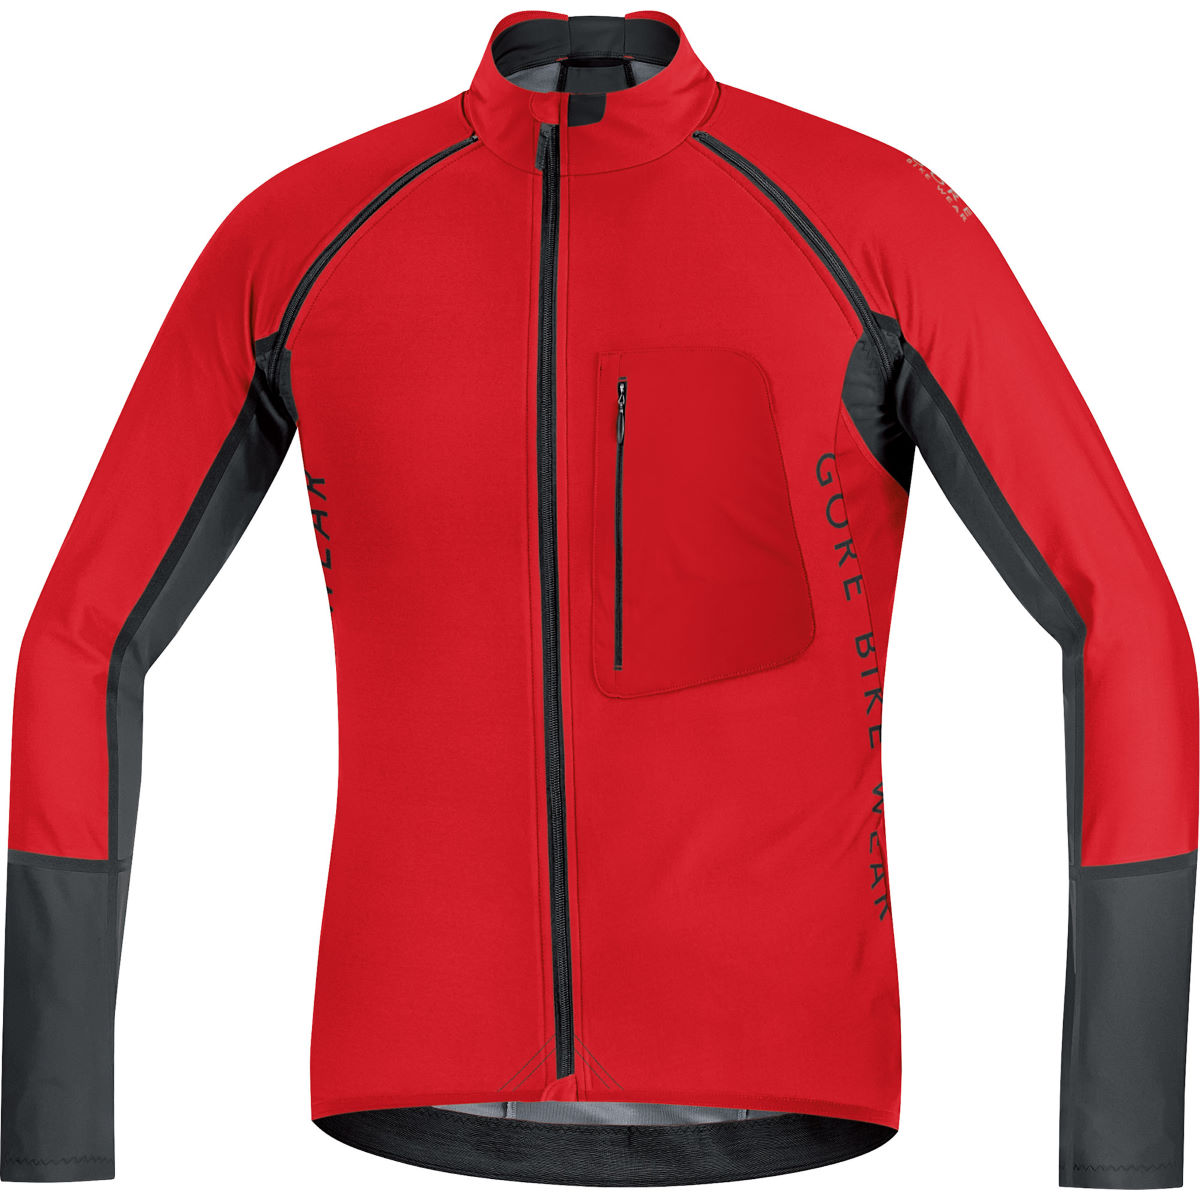 Veste Gore Bike Wear Alp-X Pro Windstopper Softshell (zippée) - S Rouge/Noir Coupe-vents vélo